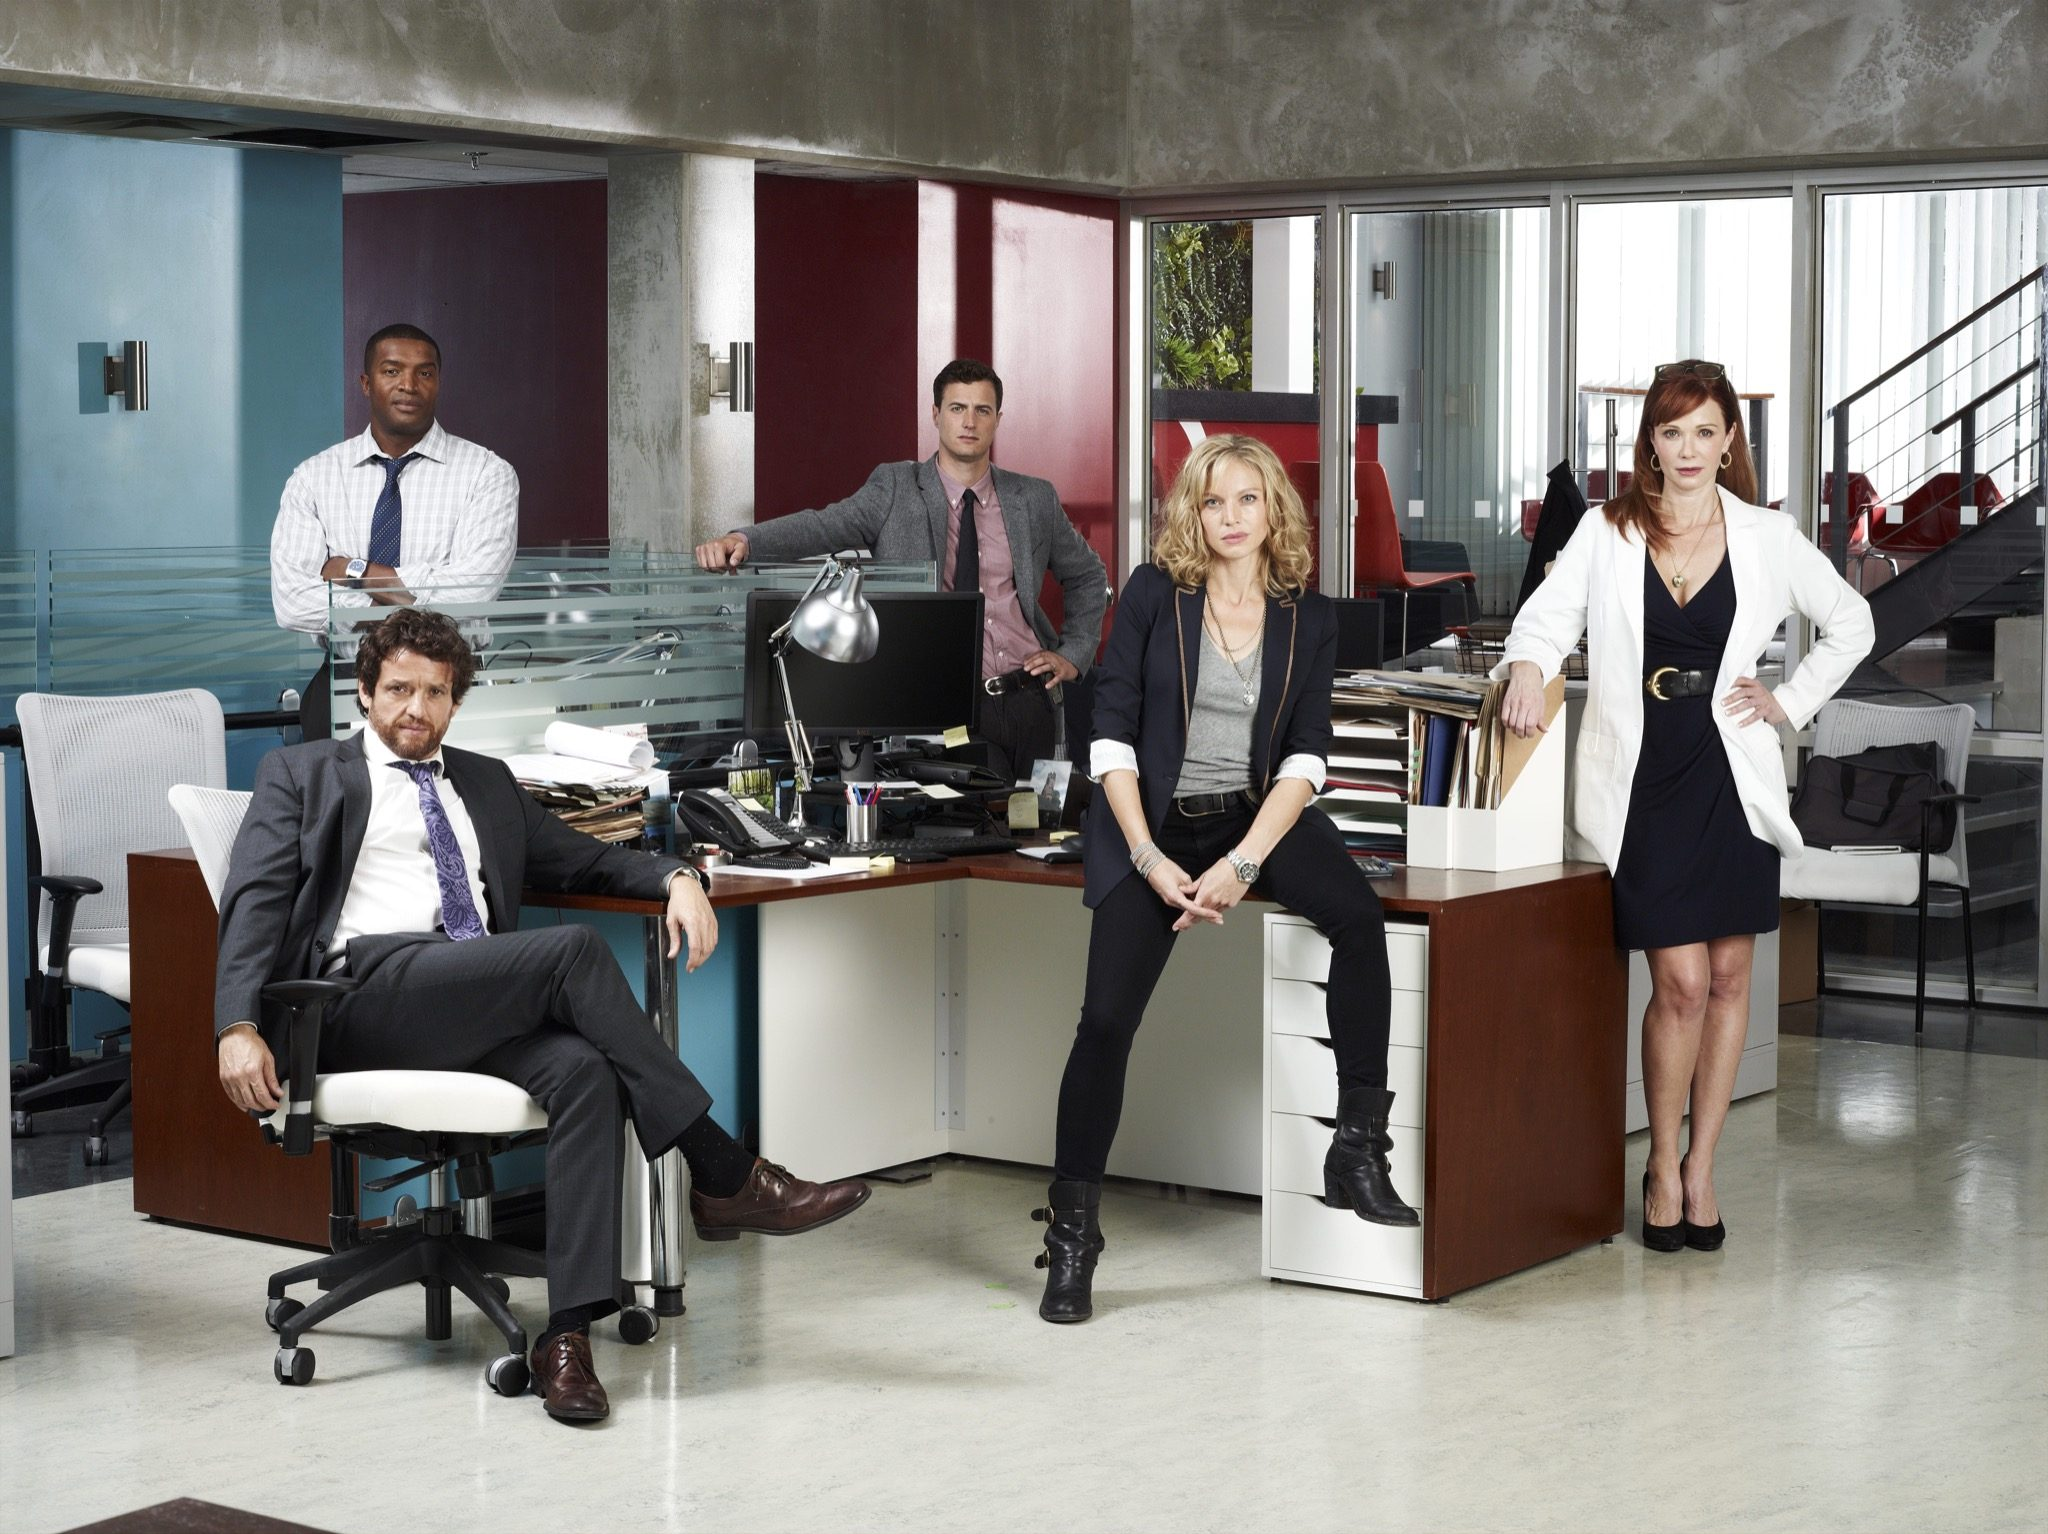 Motive - le mobile du crime saison 1 photo